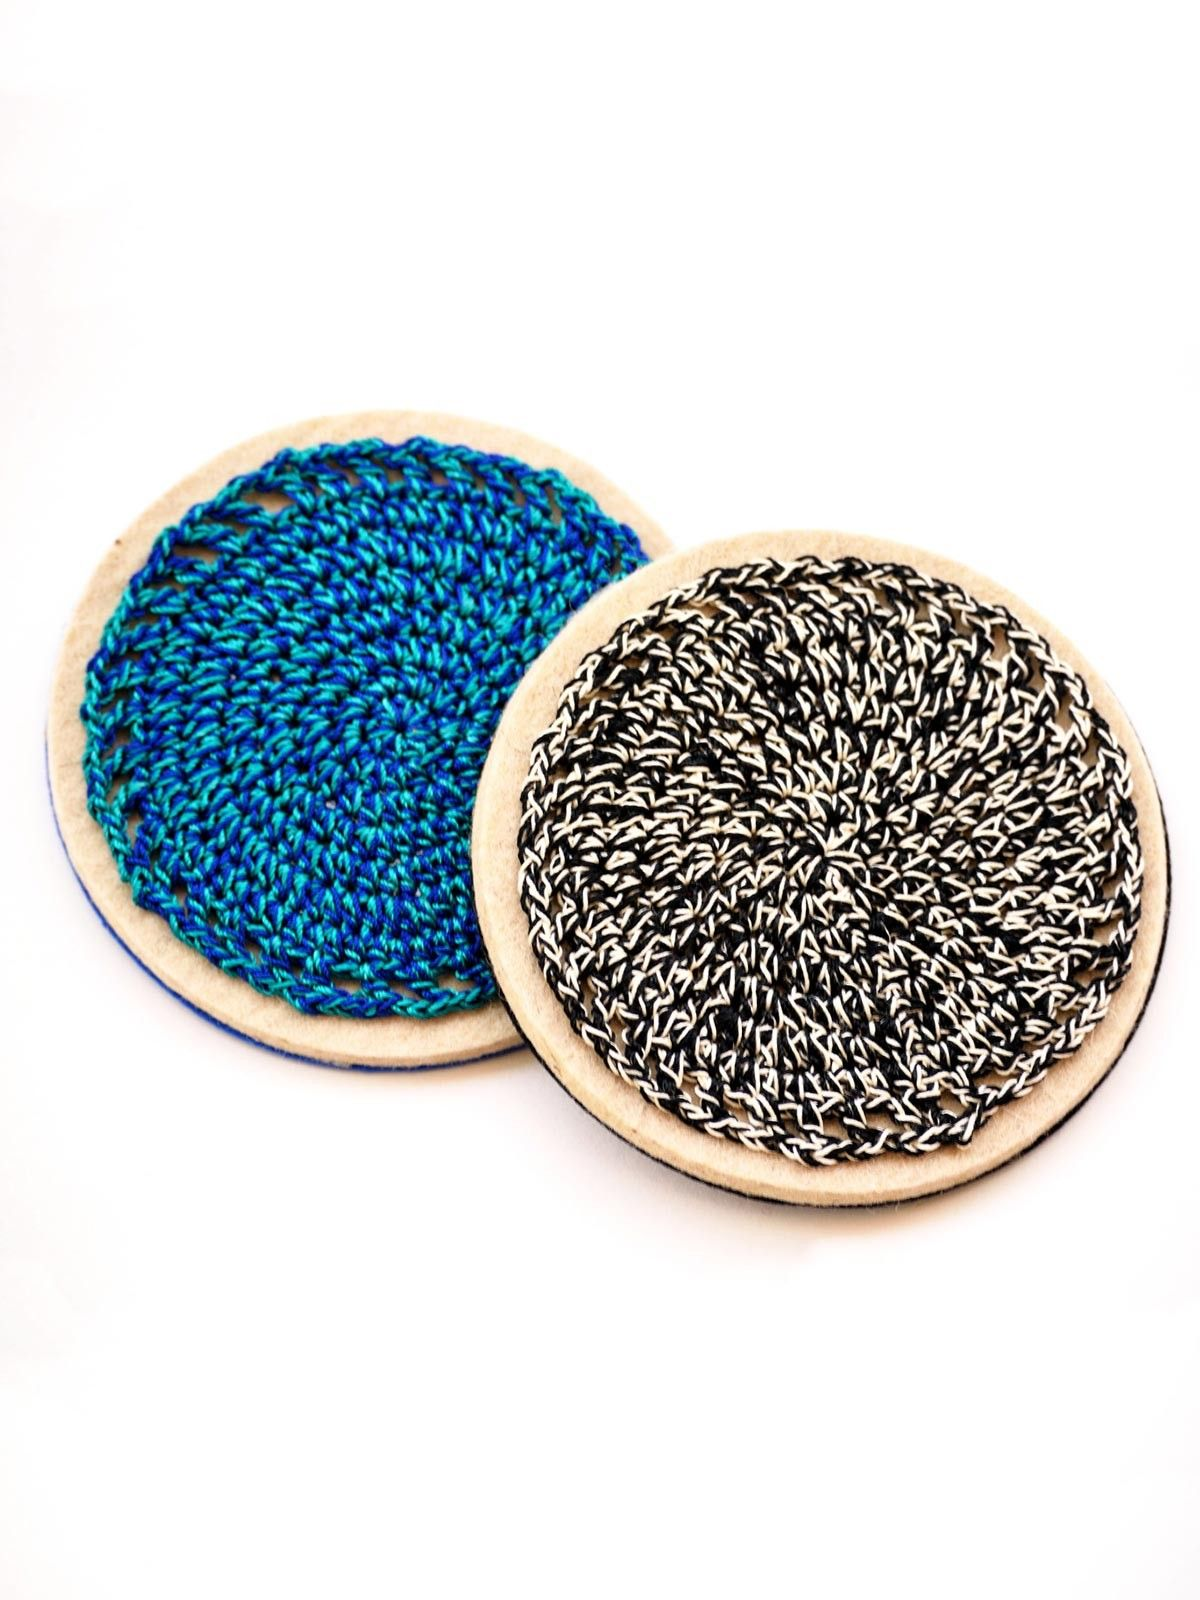 Dappled Shades Coasters